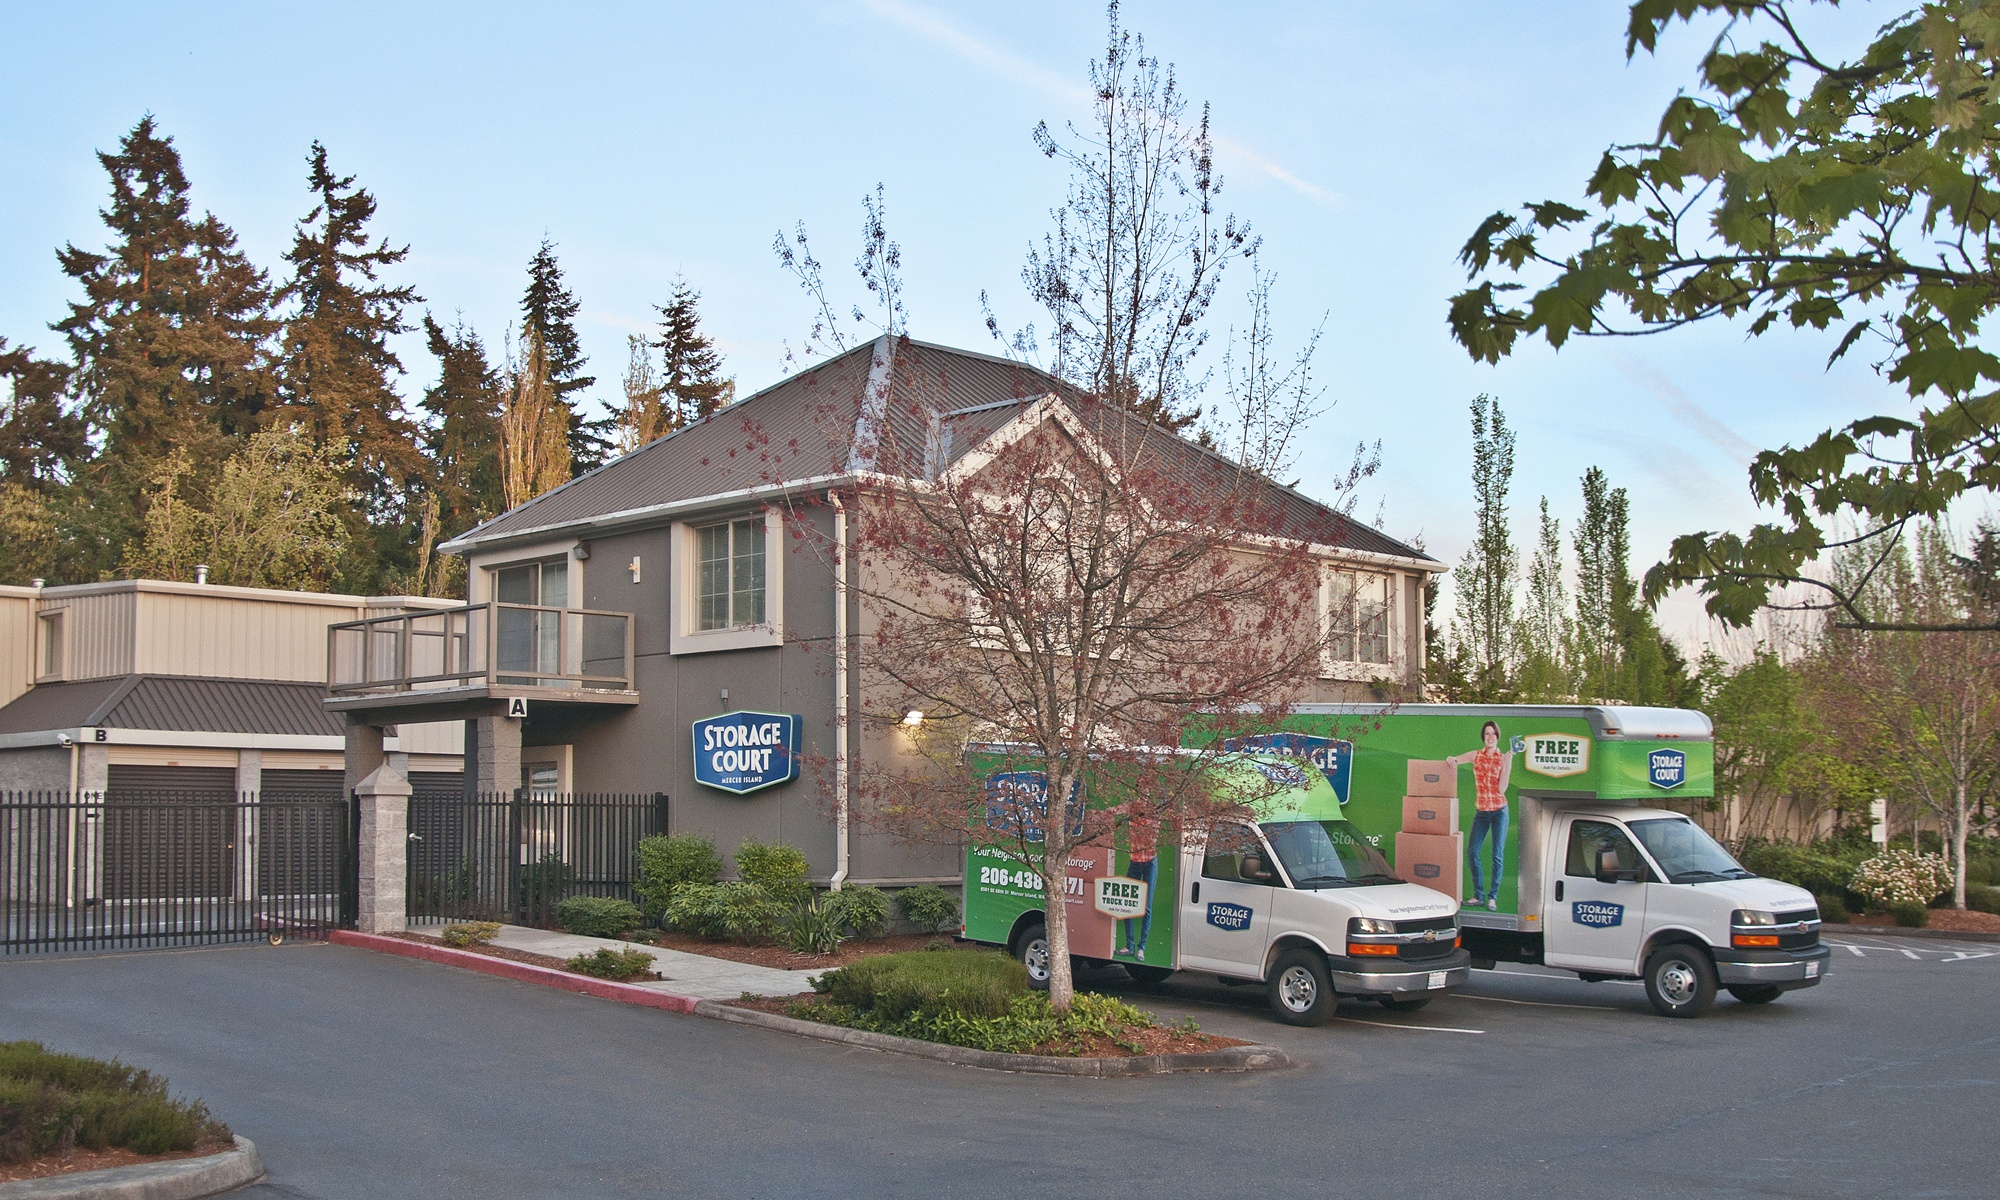 Self storage in Mercer Island WA